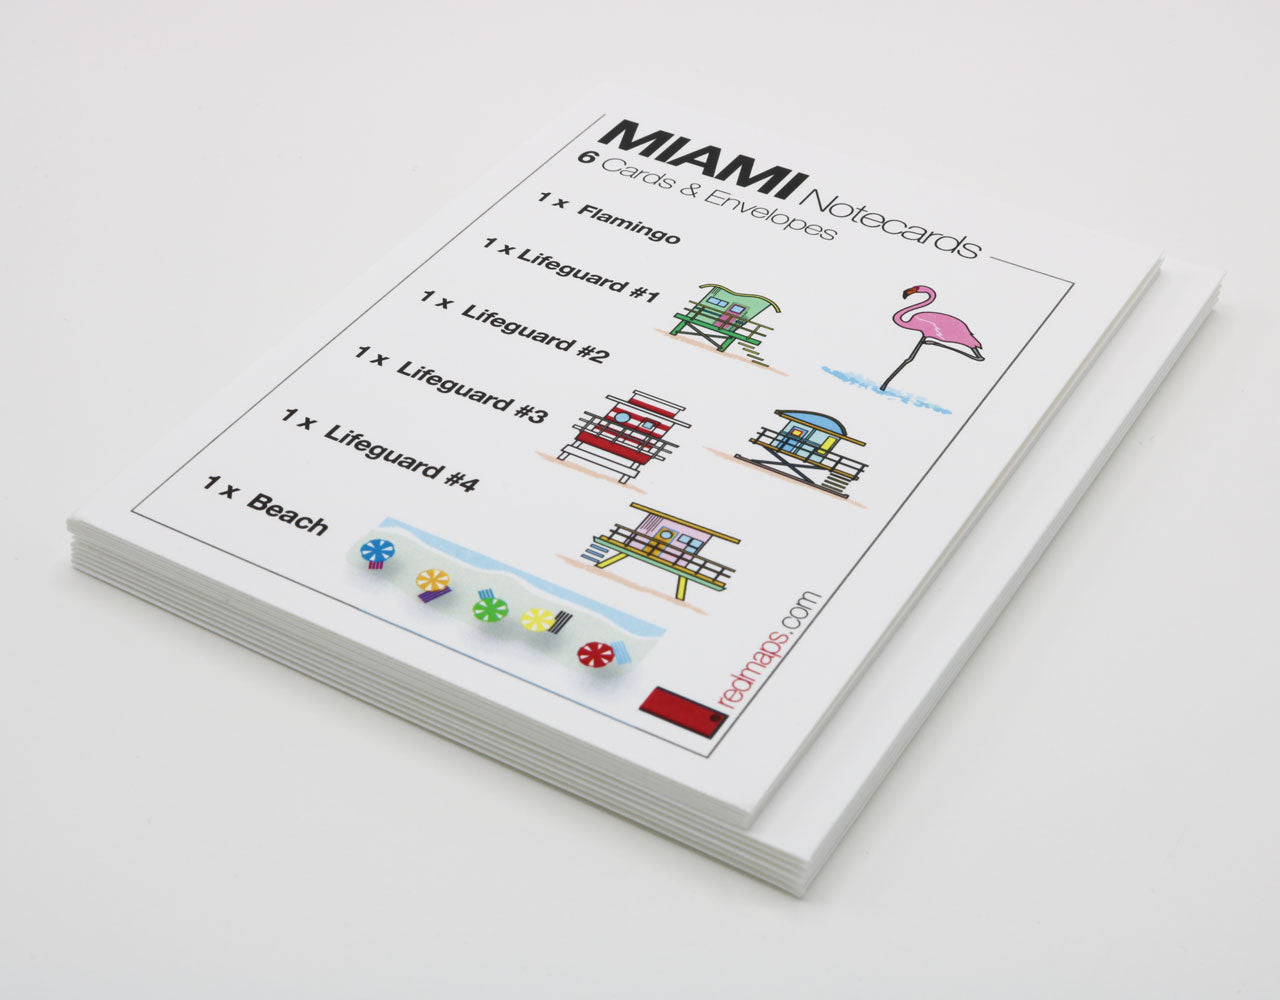 Miami-themed stationery with drawings of colorful lifeguard stations, Flamingo and beach umbrellas